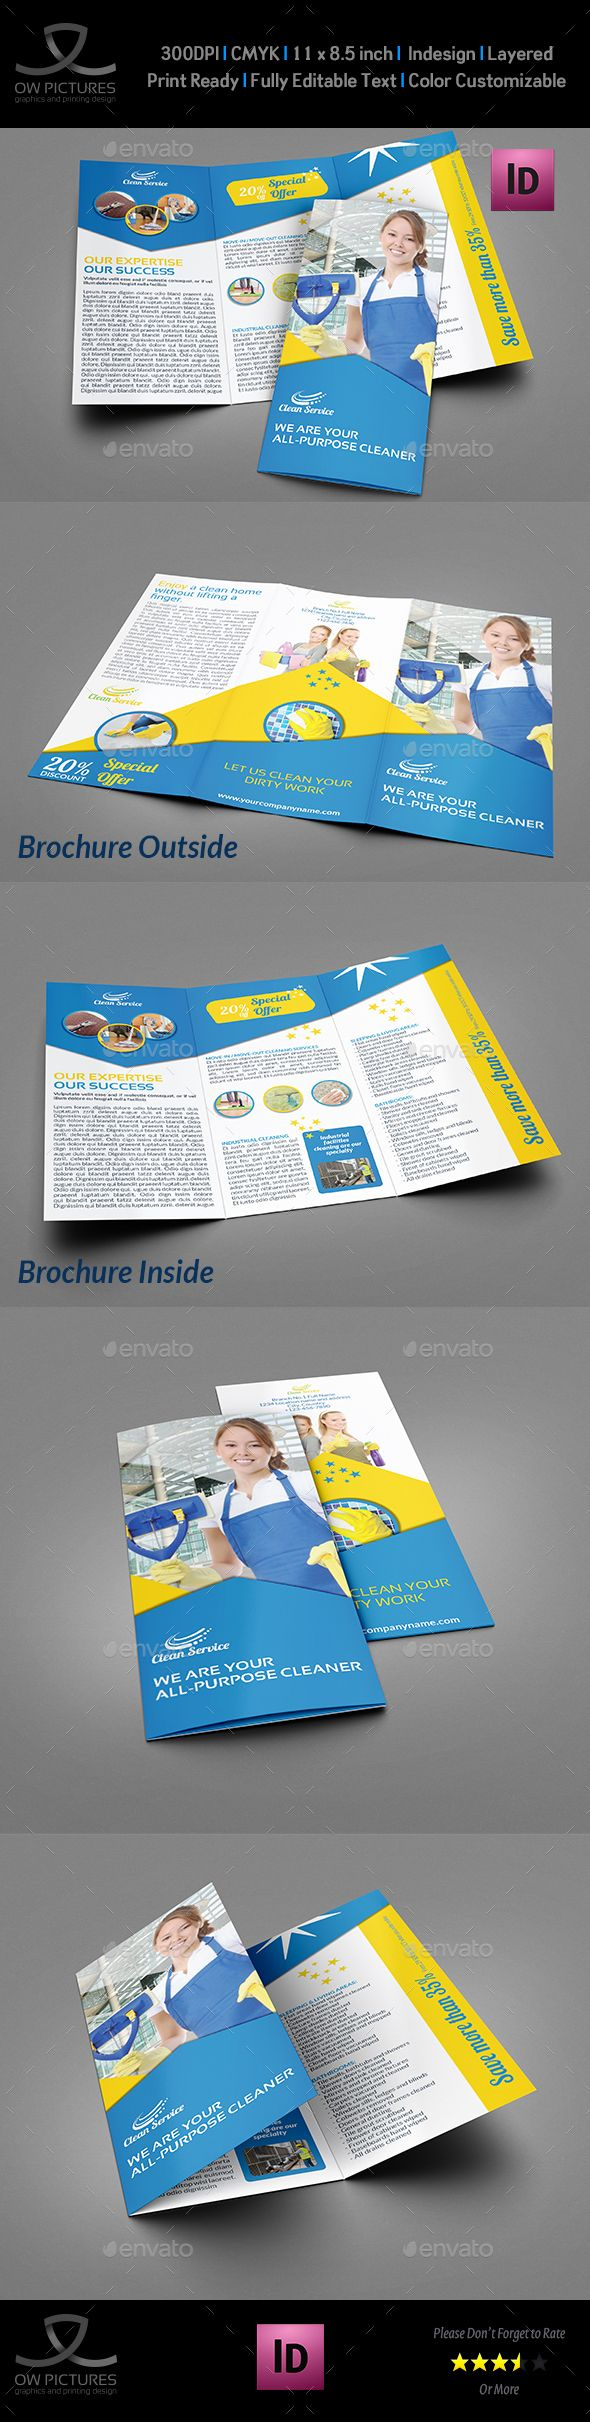 Cleaning Services Tri-Fold Brochure Template InDesign INDD